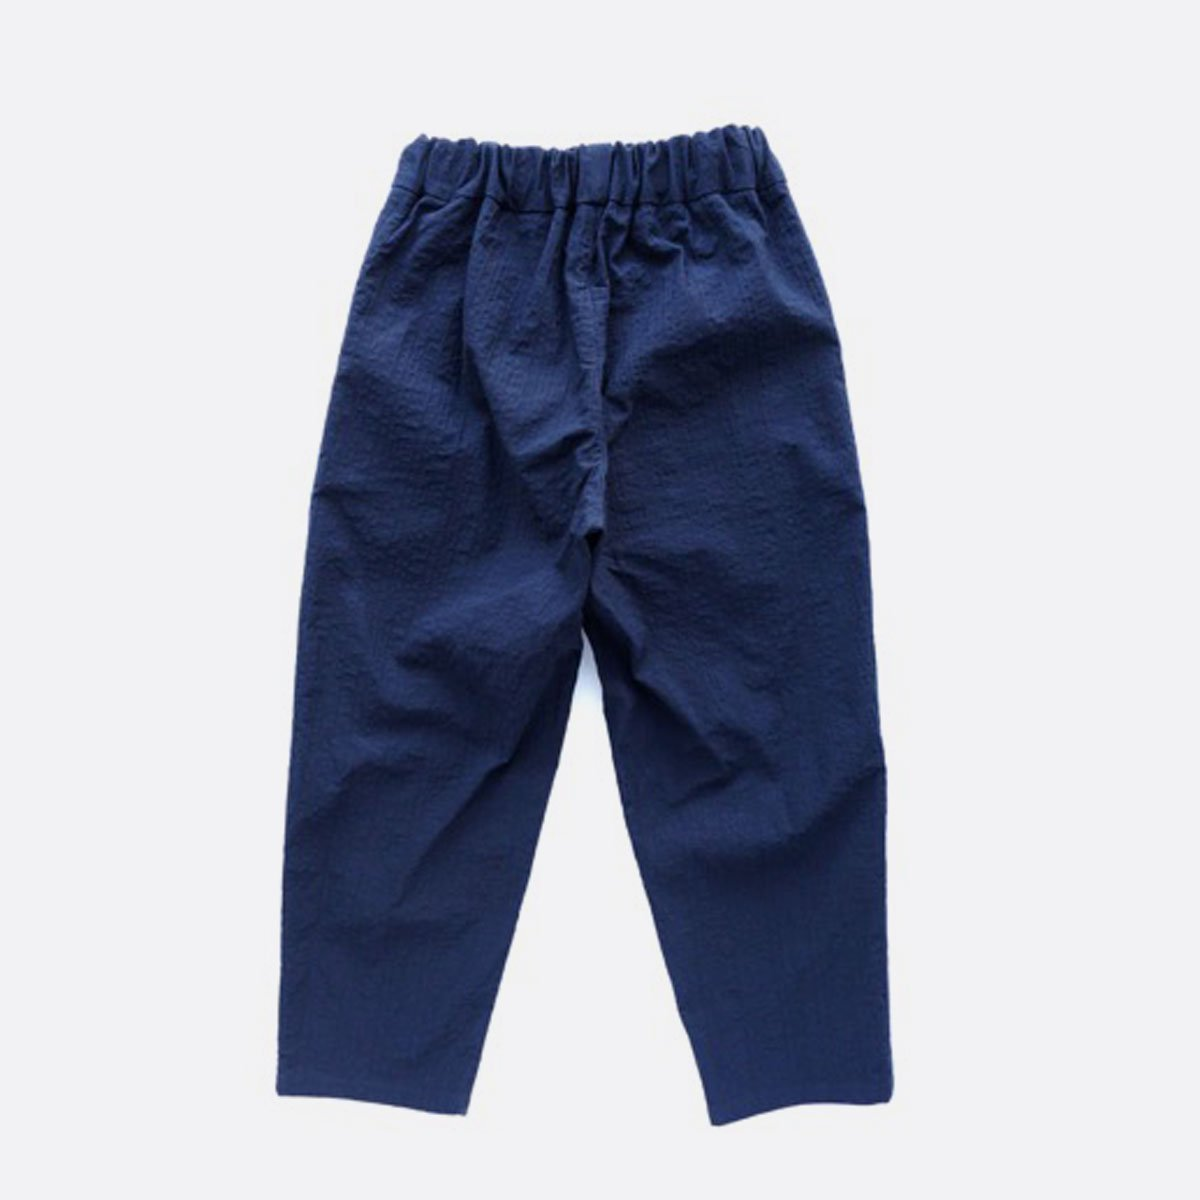 NO CONTROL AIR SALT SHRINKING COTTON PONGEE EASY PANT (navy)2